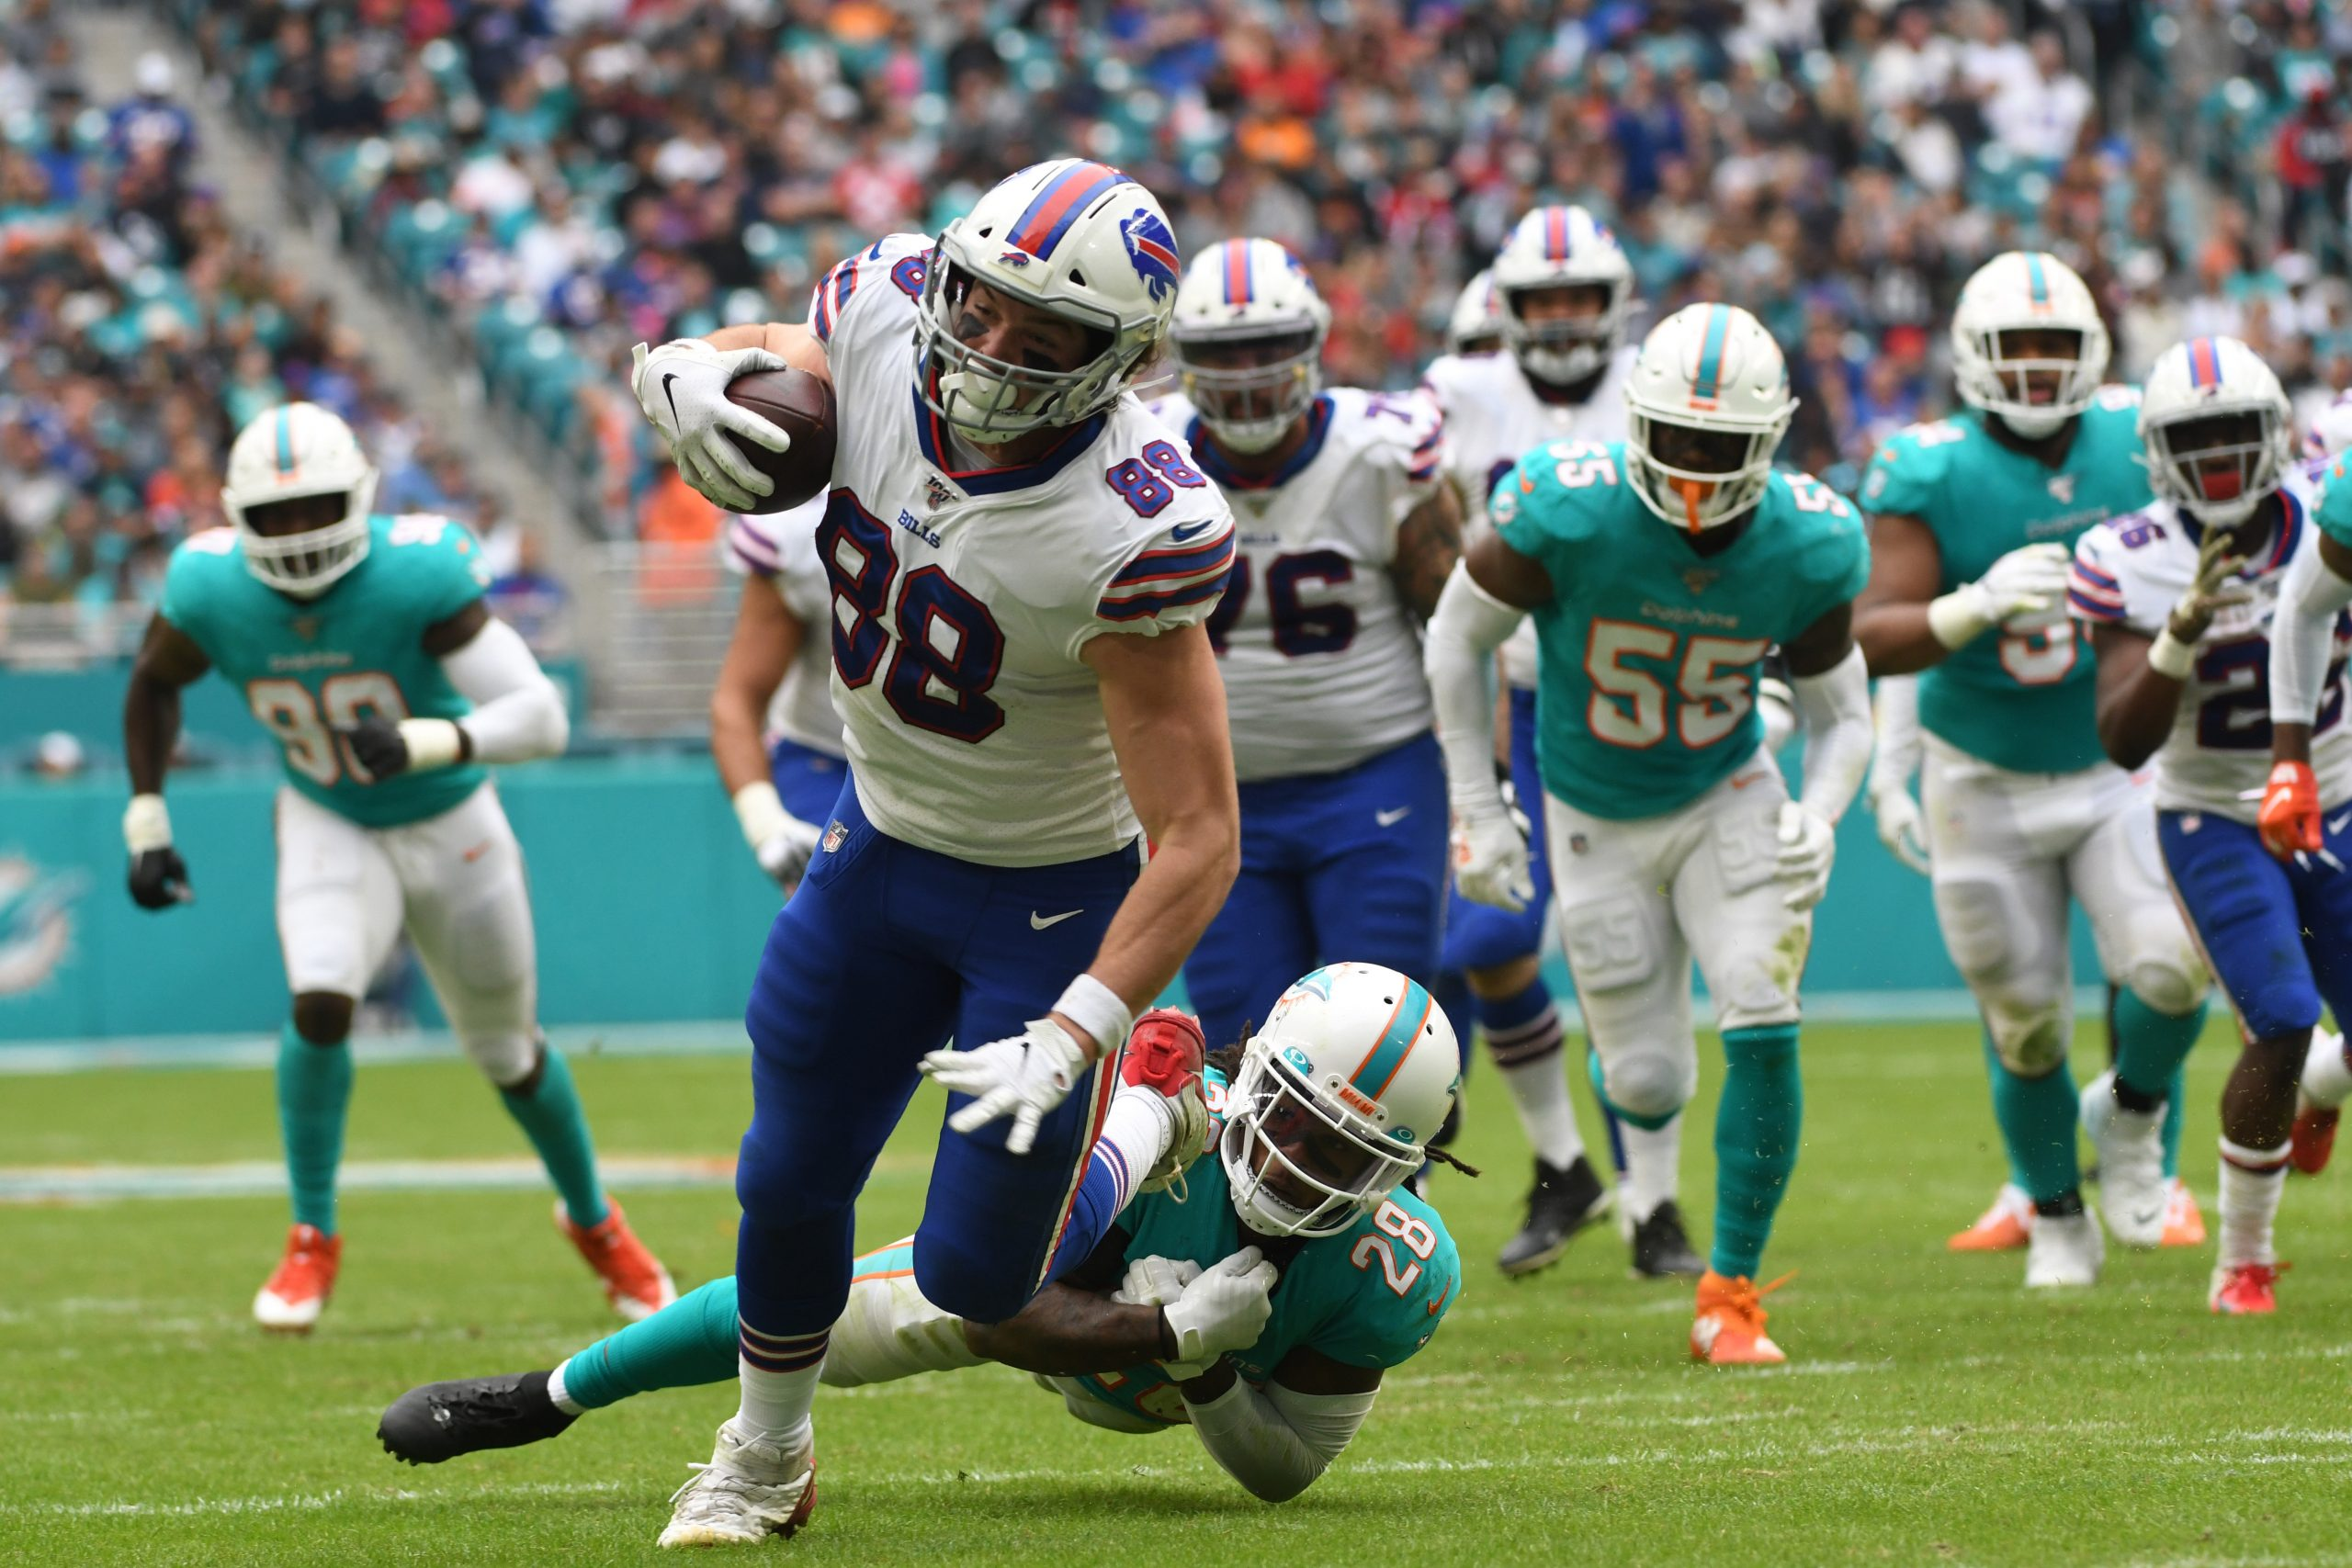 November 17, 2019: Dawson Knox 88 of Buffalo is tackled by Bobby McCain 28 of Miami during the NFL, American Football He